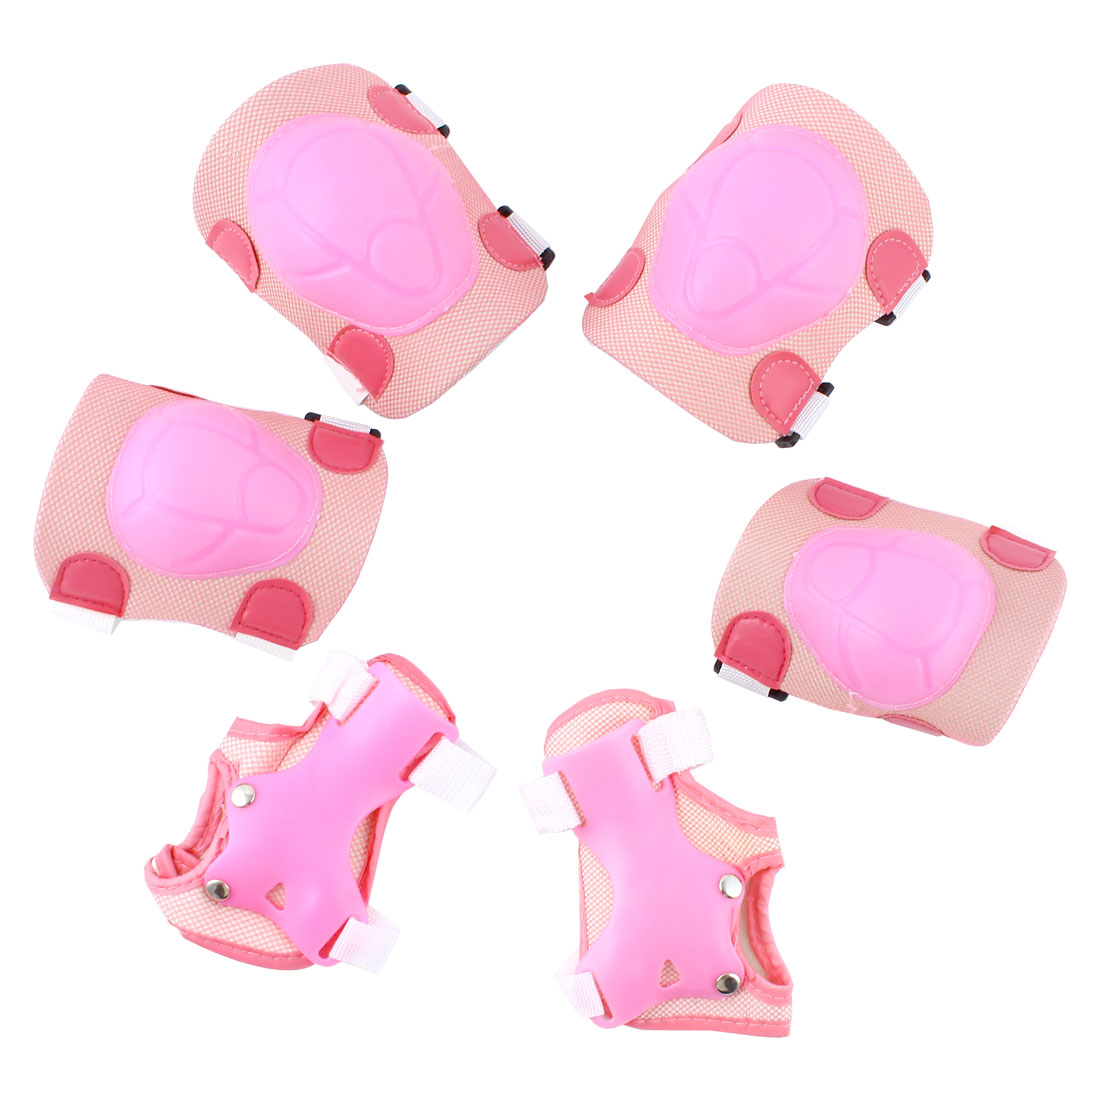 Outdoors Cycling Skiing Knee Elbow Pads Guard Wrist Protector Pink 3 Pairs